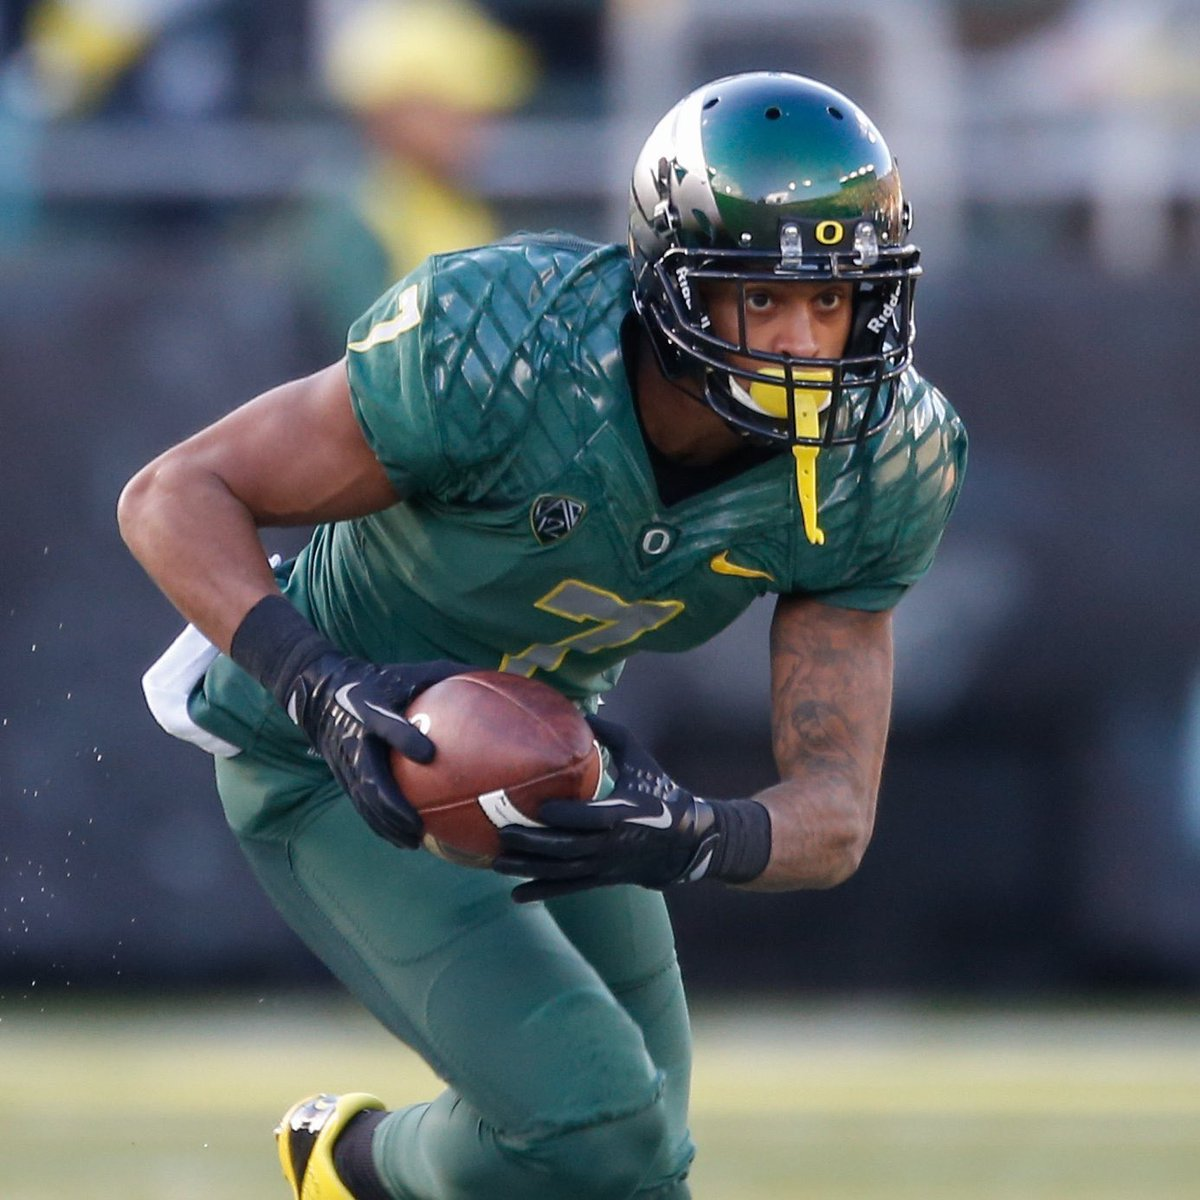 Former Oregon standout Keanon Lowe tackled a gunman to the ground at a Portland high school today. True hero🙏